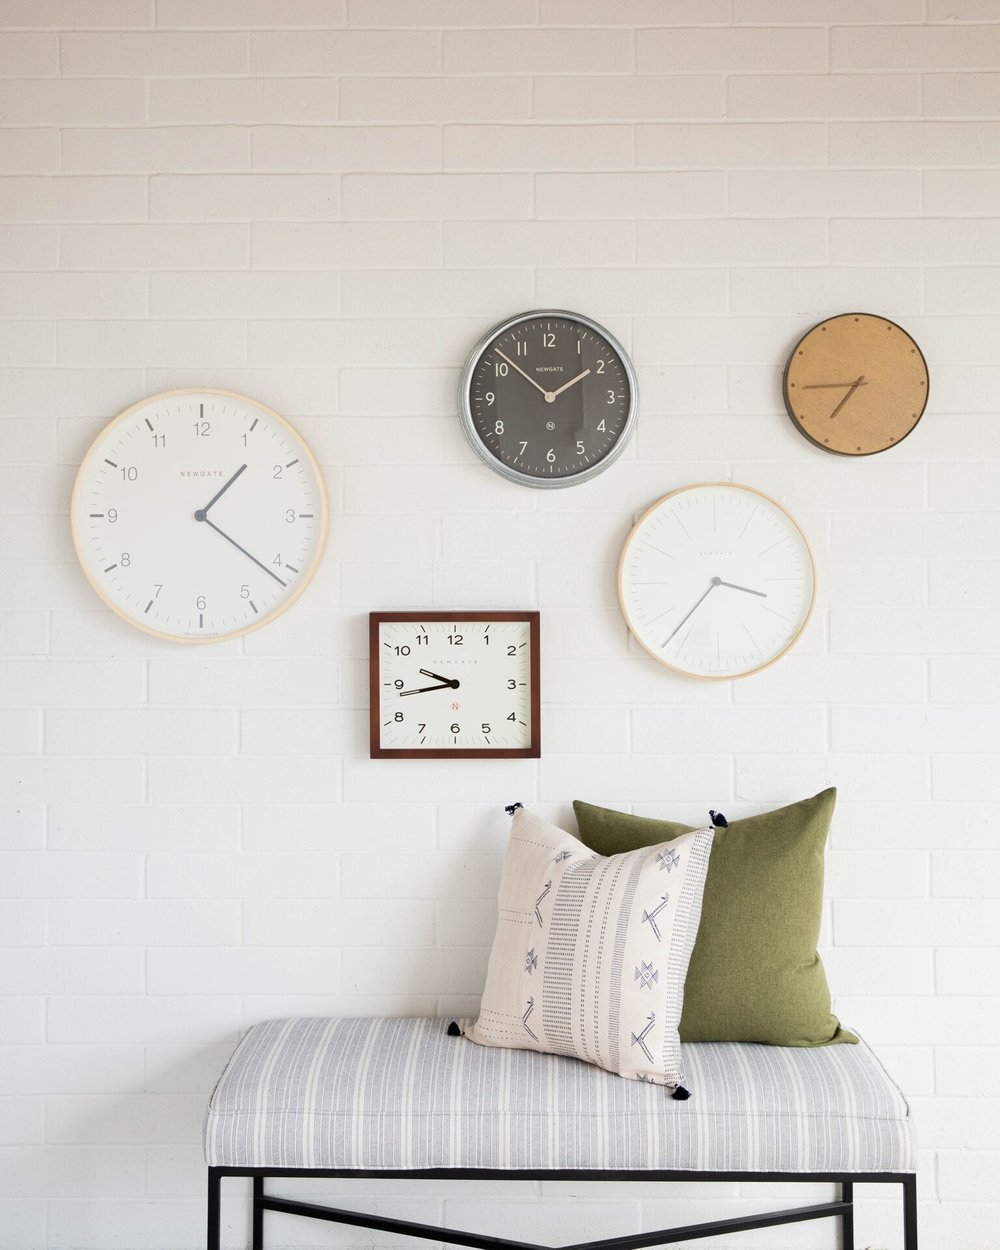 17-8-9-WallClocks_5.jpg